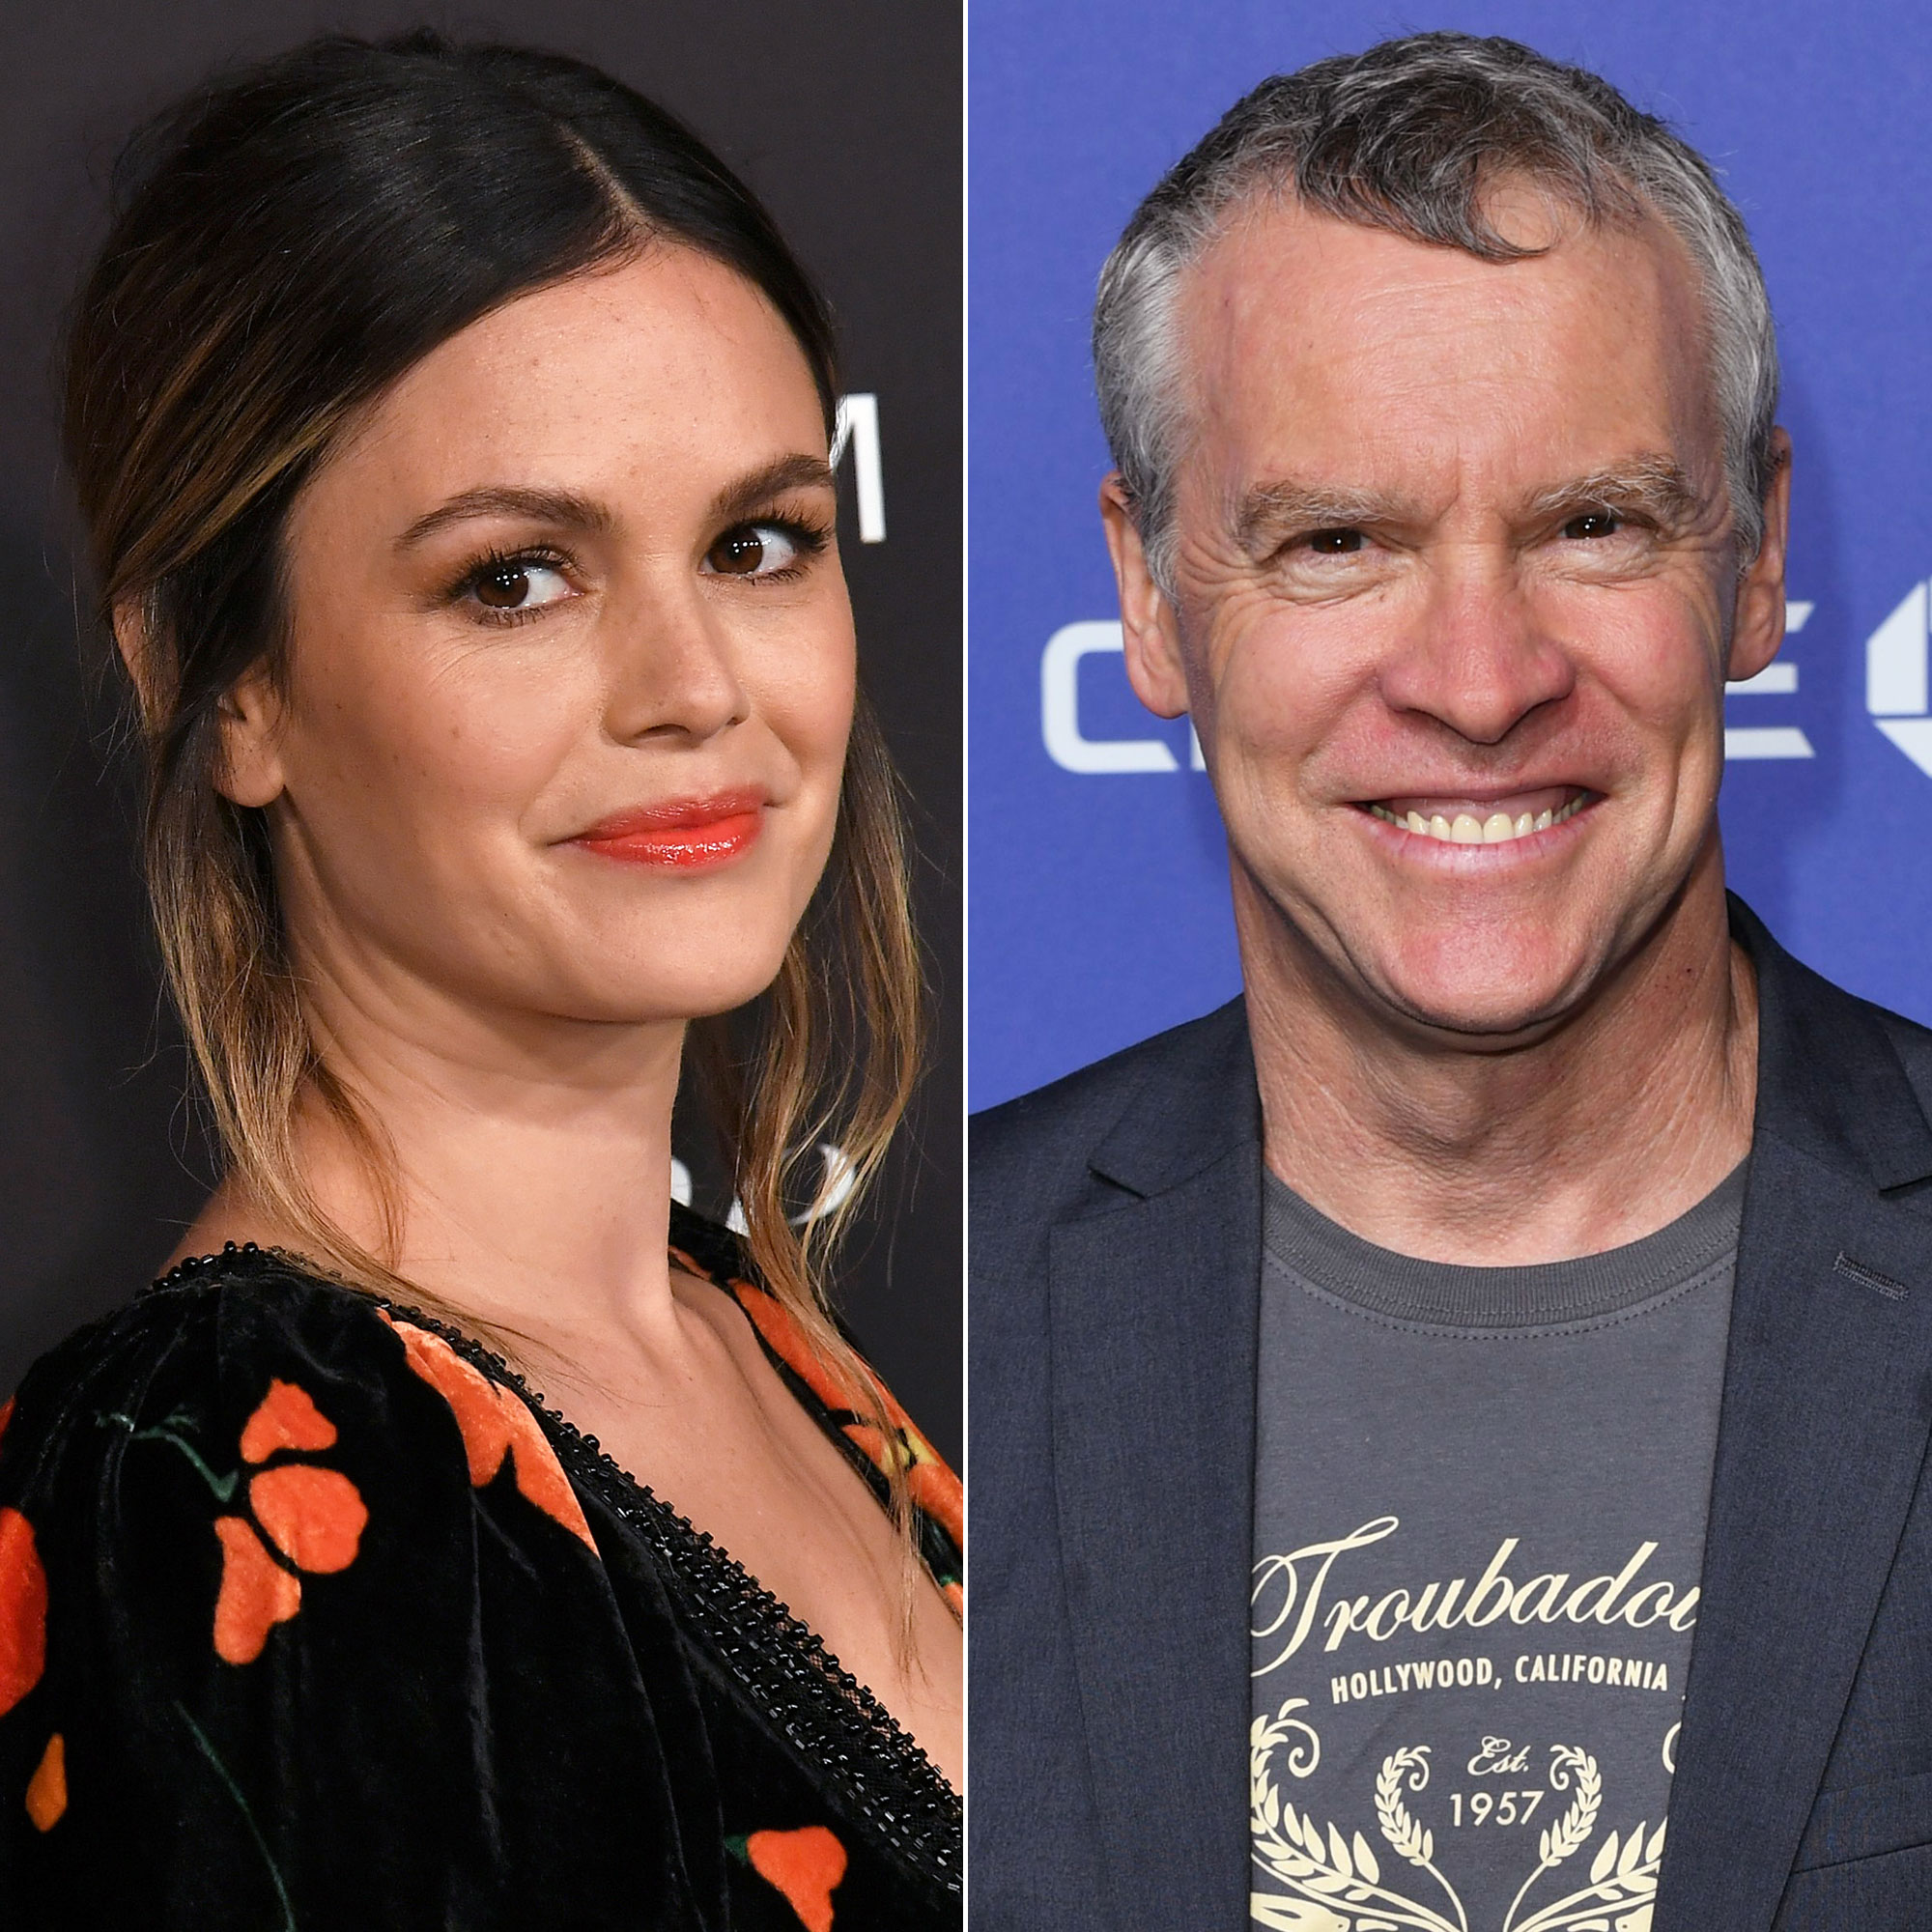 Rachel Bilson Apologizes to Tate Donovan for Being an 'A--hole' on 'The OC'